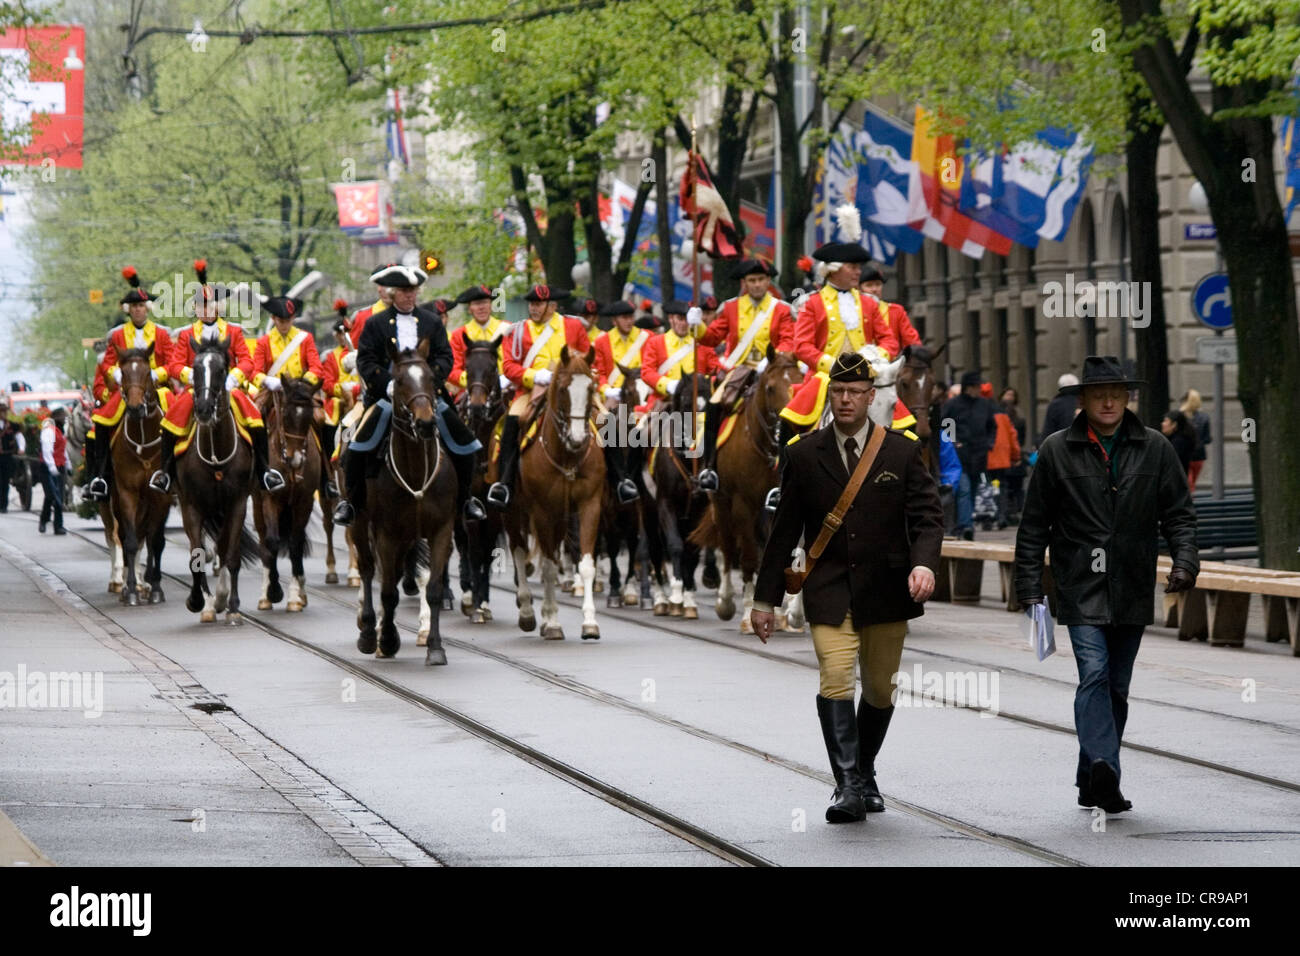 ZURICH - APRIL 16: Members of traditional annual spring parade of Guilds, ride along Bahnhofstrasse - Stock Image